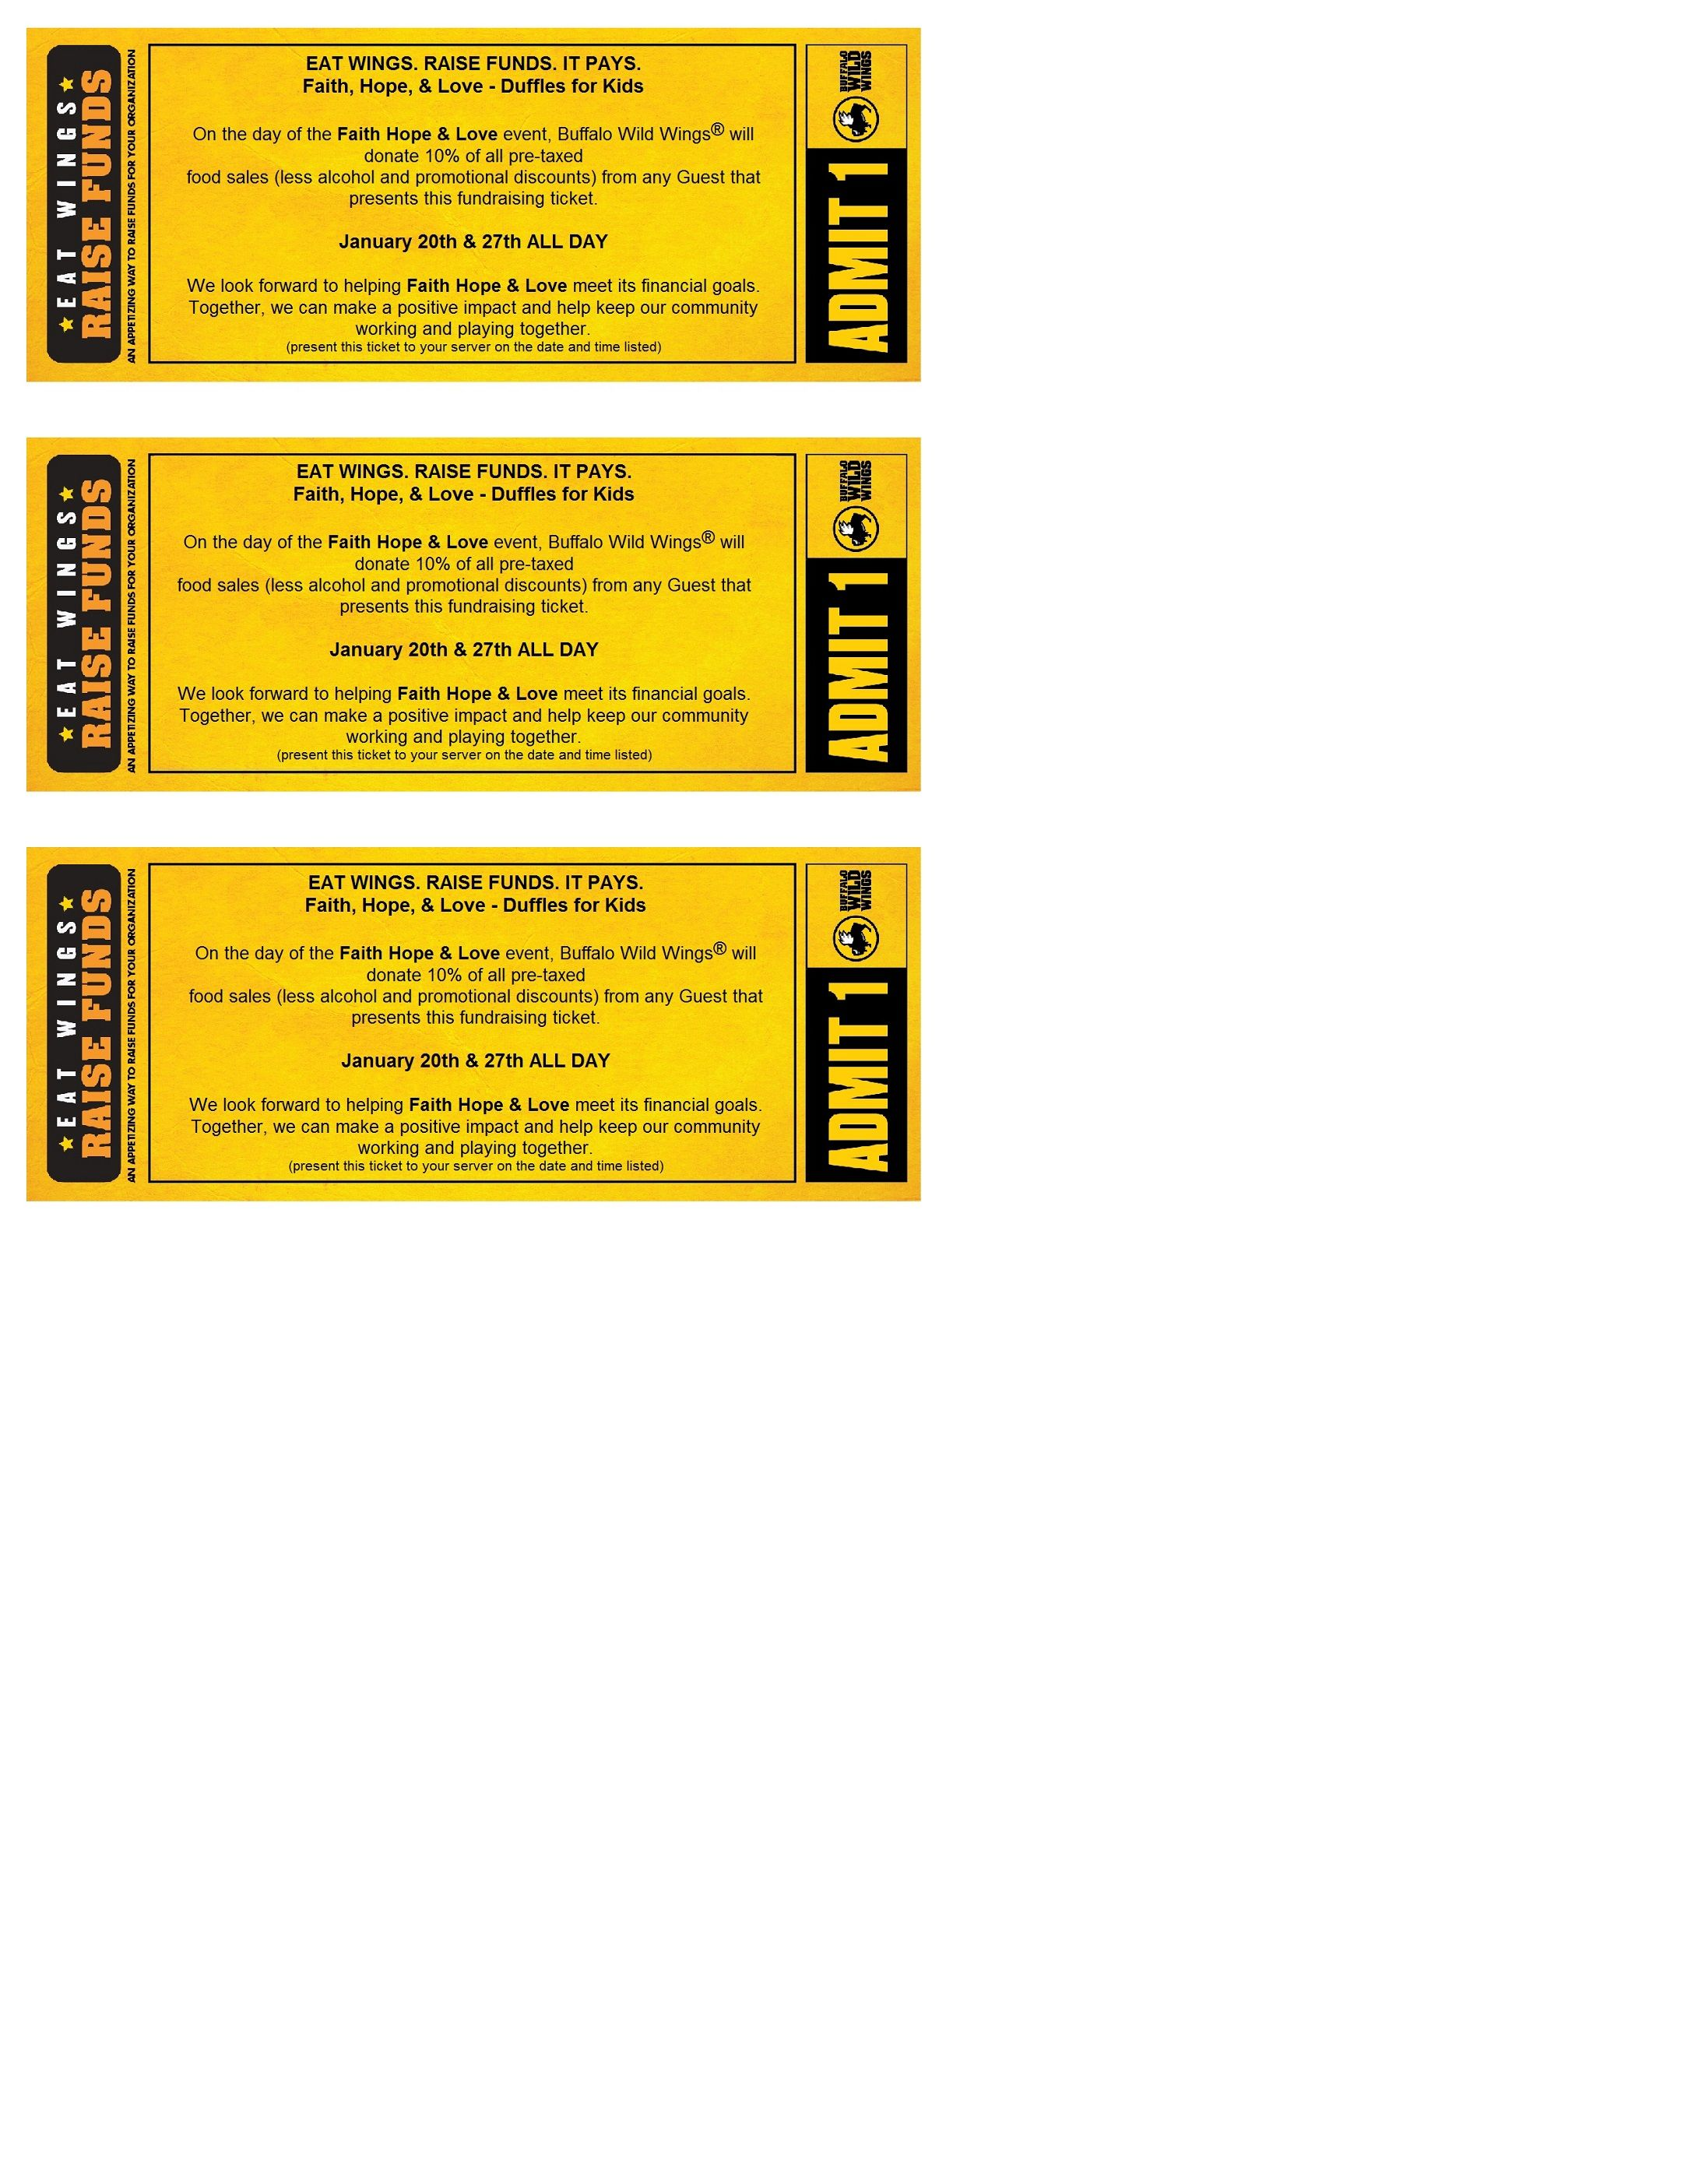 On January 20th & 27th- ALL DAY, Buffalo Wild Wings Racine Wi will ...